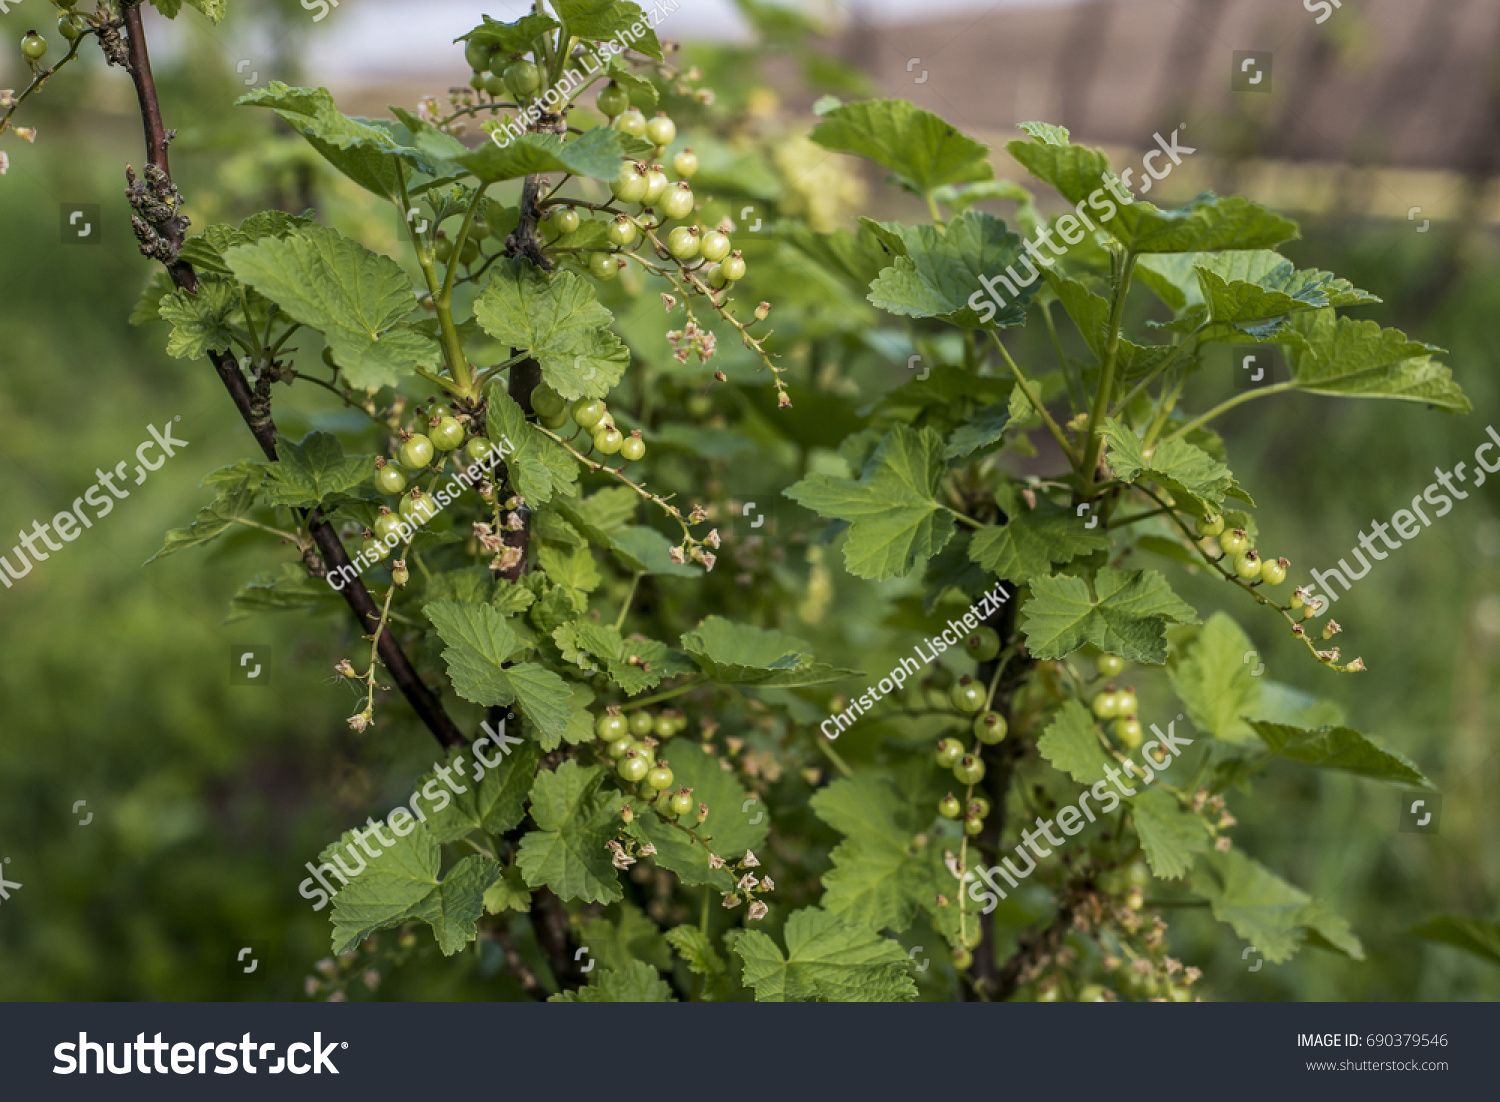 Currant Plant Unripe Raw Red White Currants Fruit Bio Organic